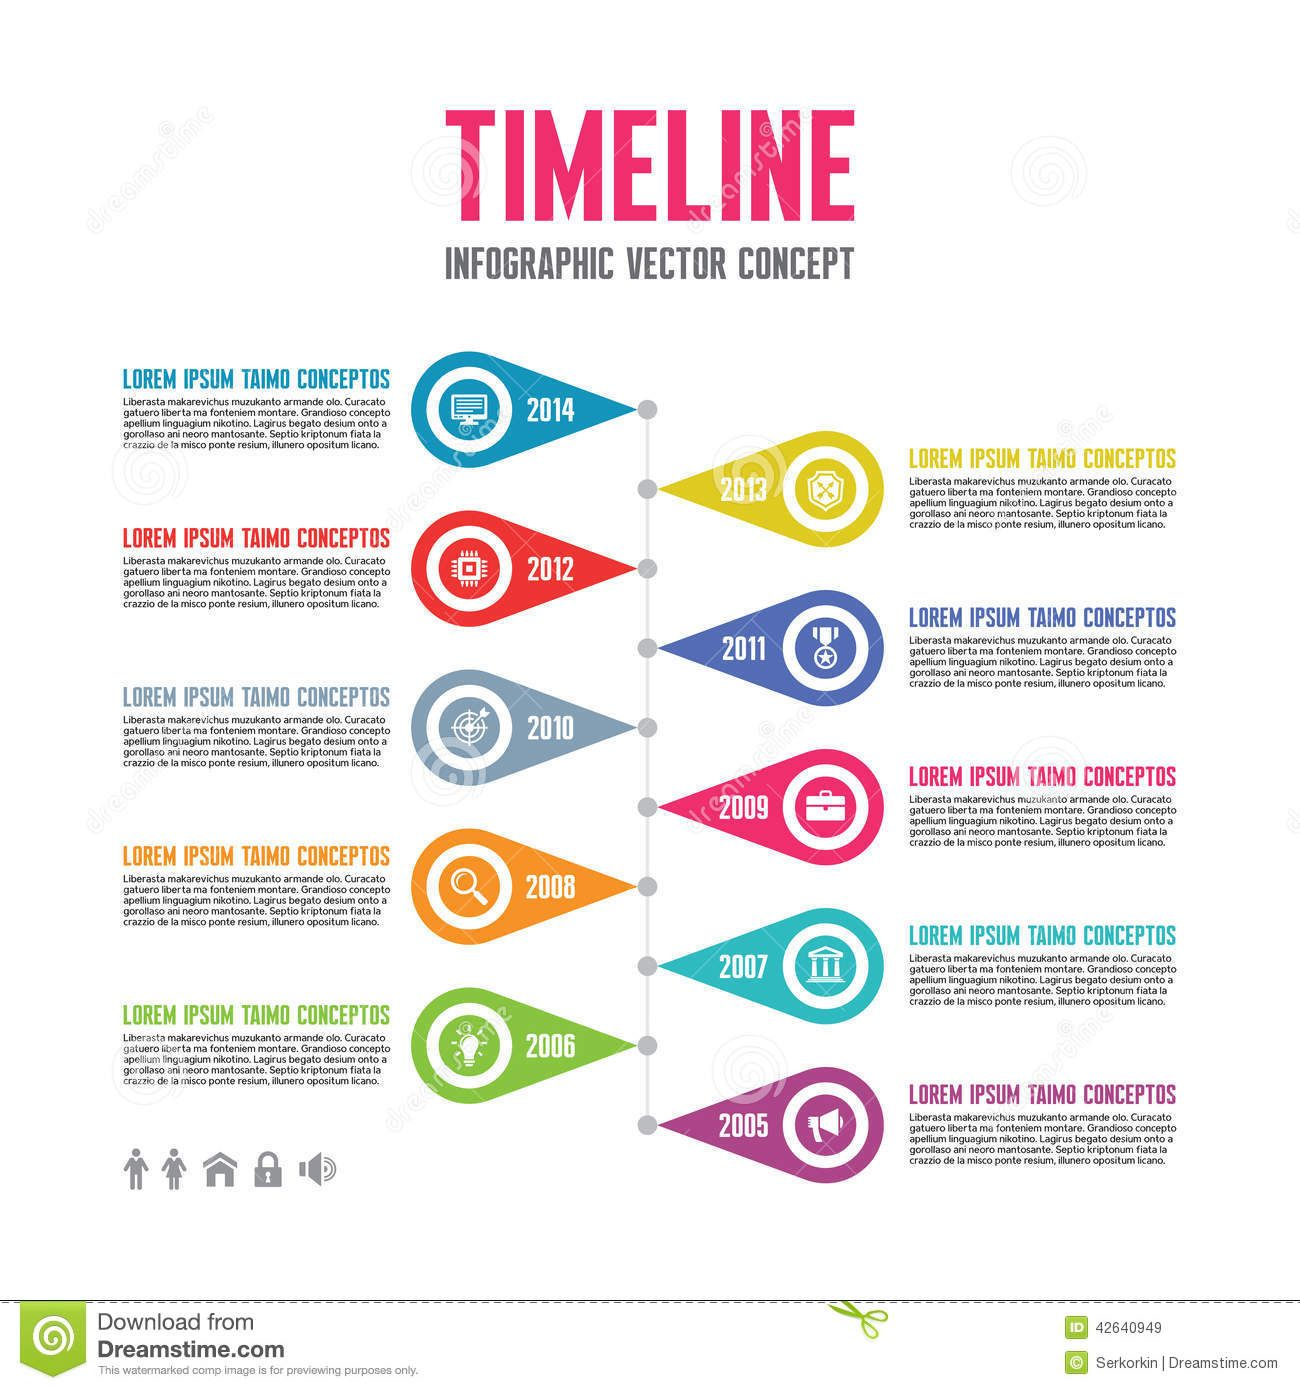 Infographic Vector Concept In Flat Design Style - Timeline ...